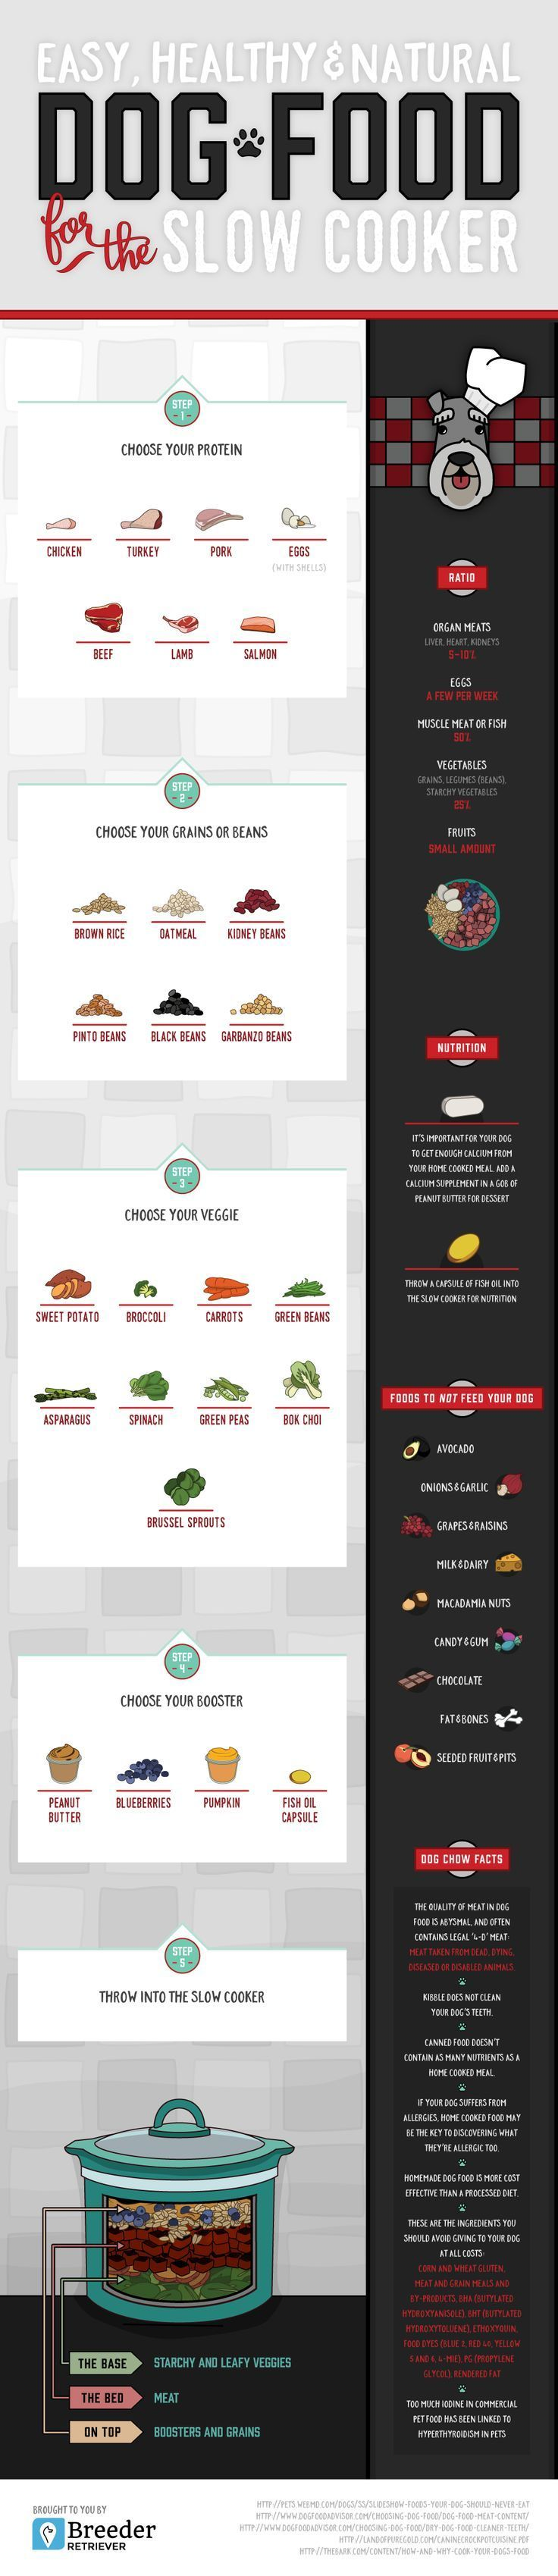 homemade dog food recipes for the slow cooker. Easy, healthy and natural dog…